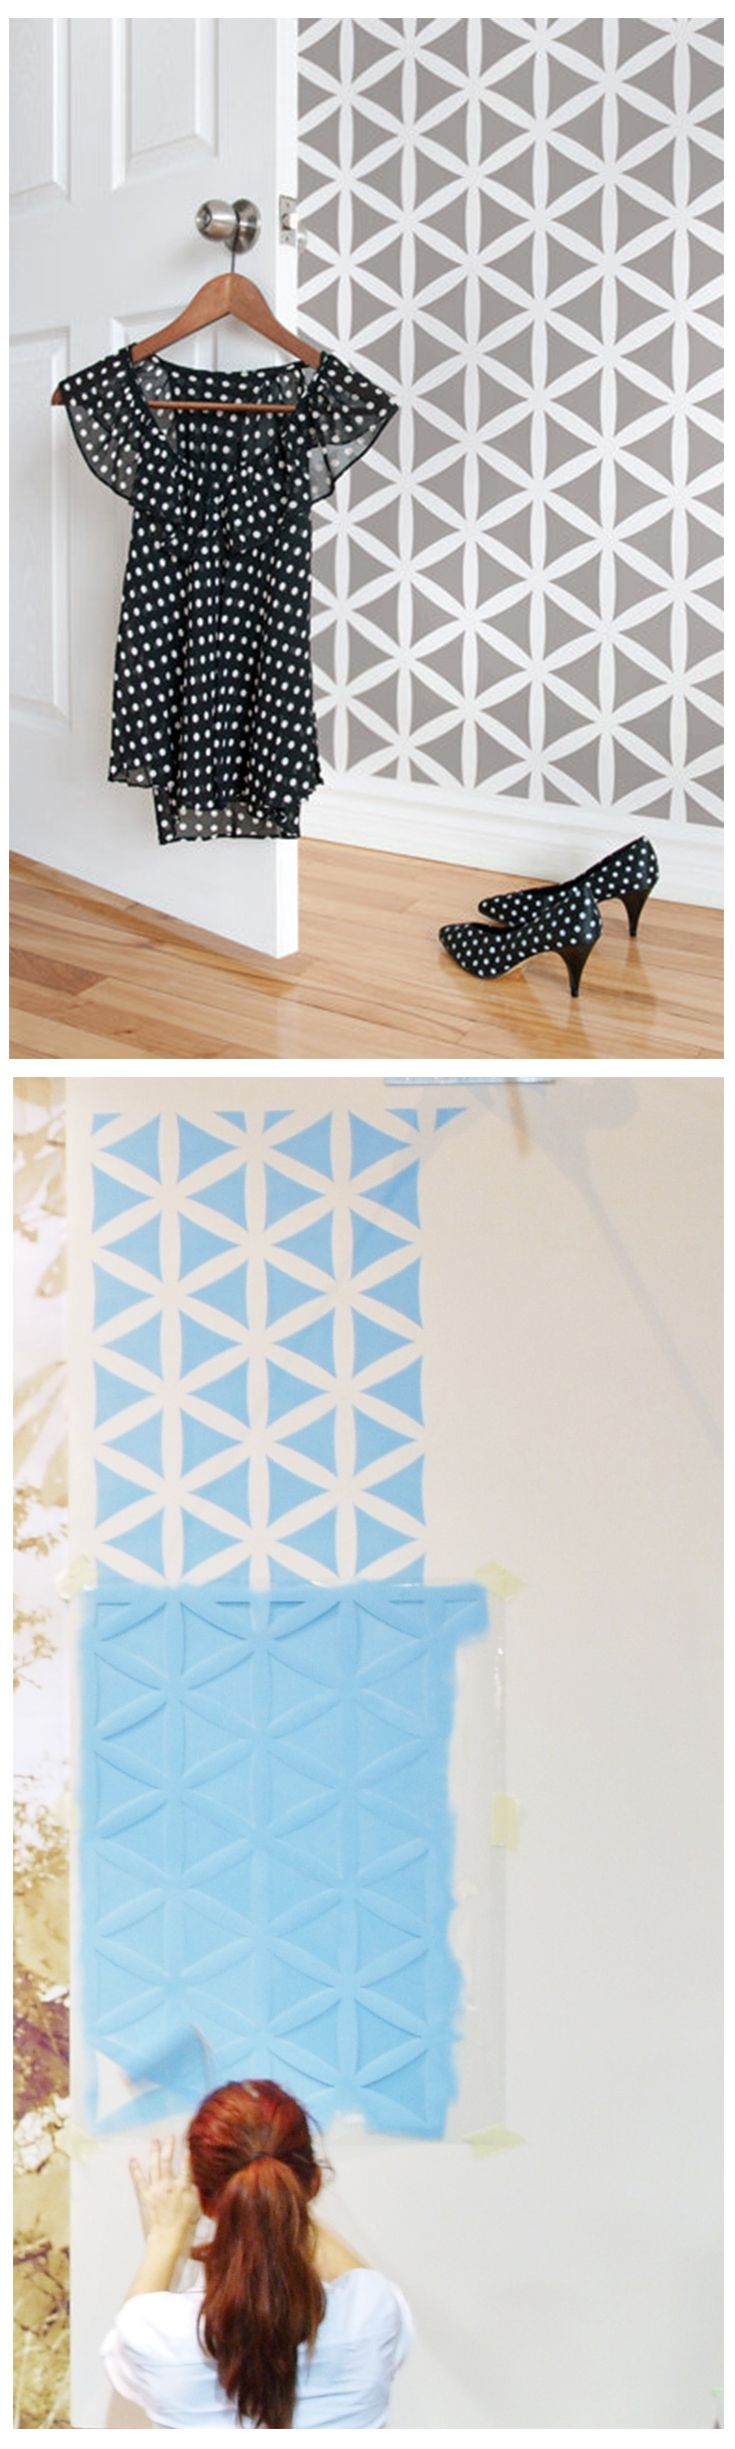 Best 25 large wall stencil ideas on pinterest wall stenciling flower of life geometric pattern large wall stencil for diy project amipublicfo Image collections